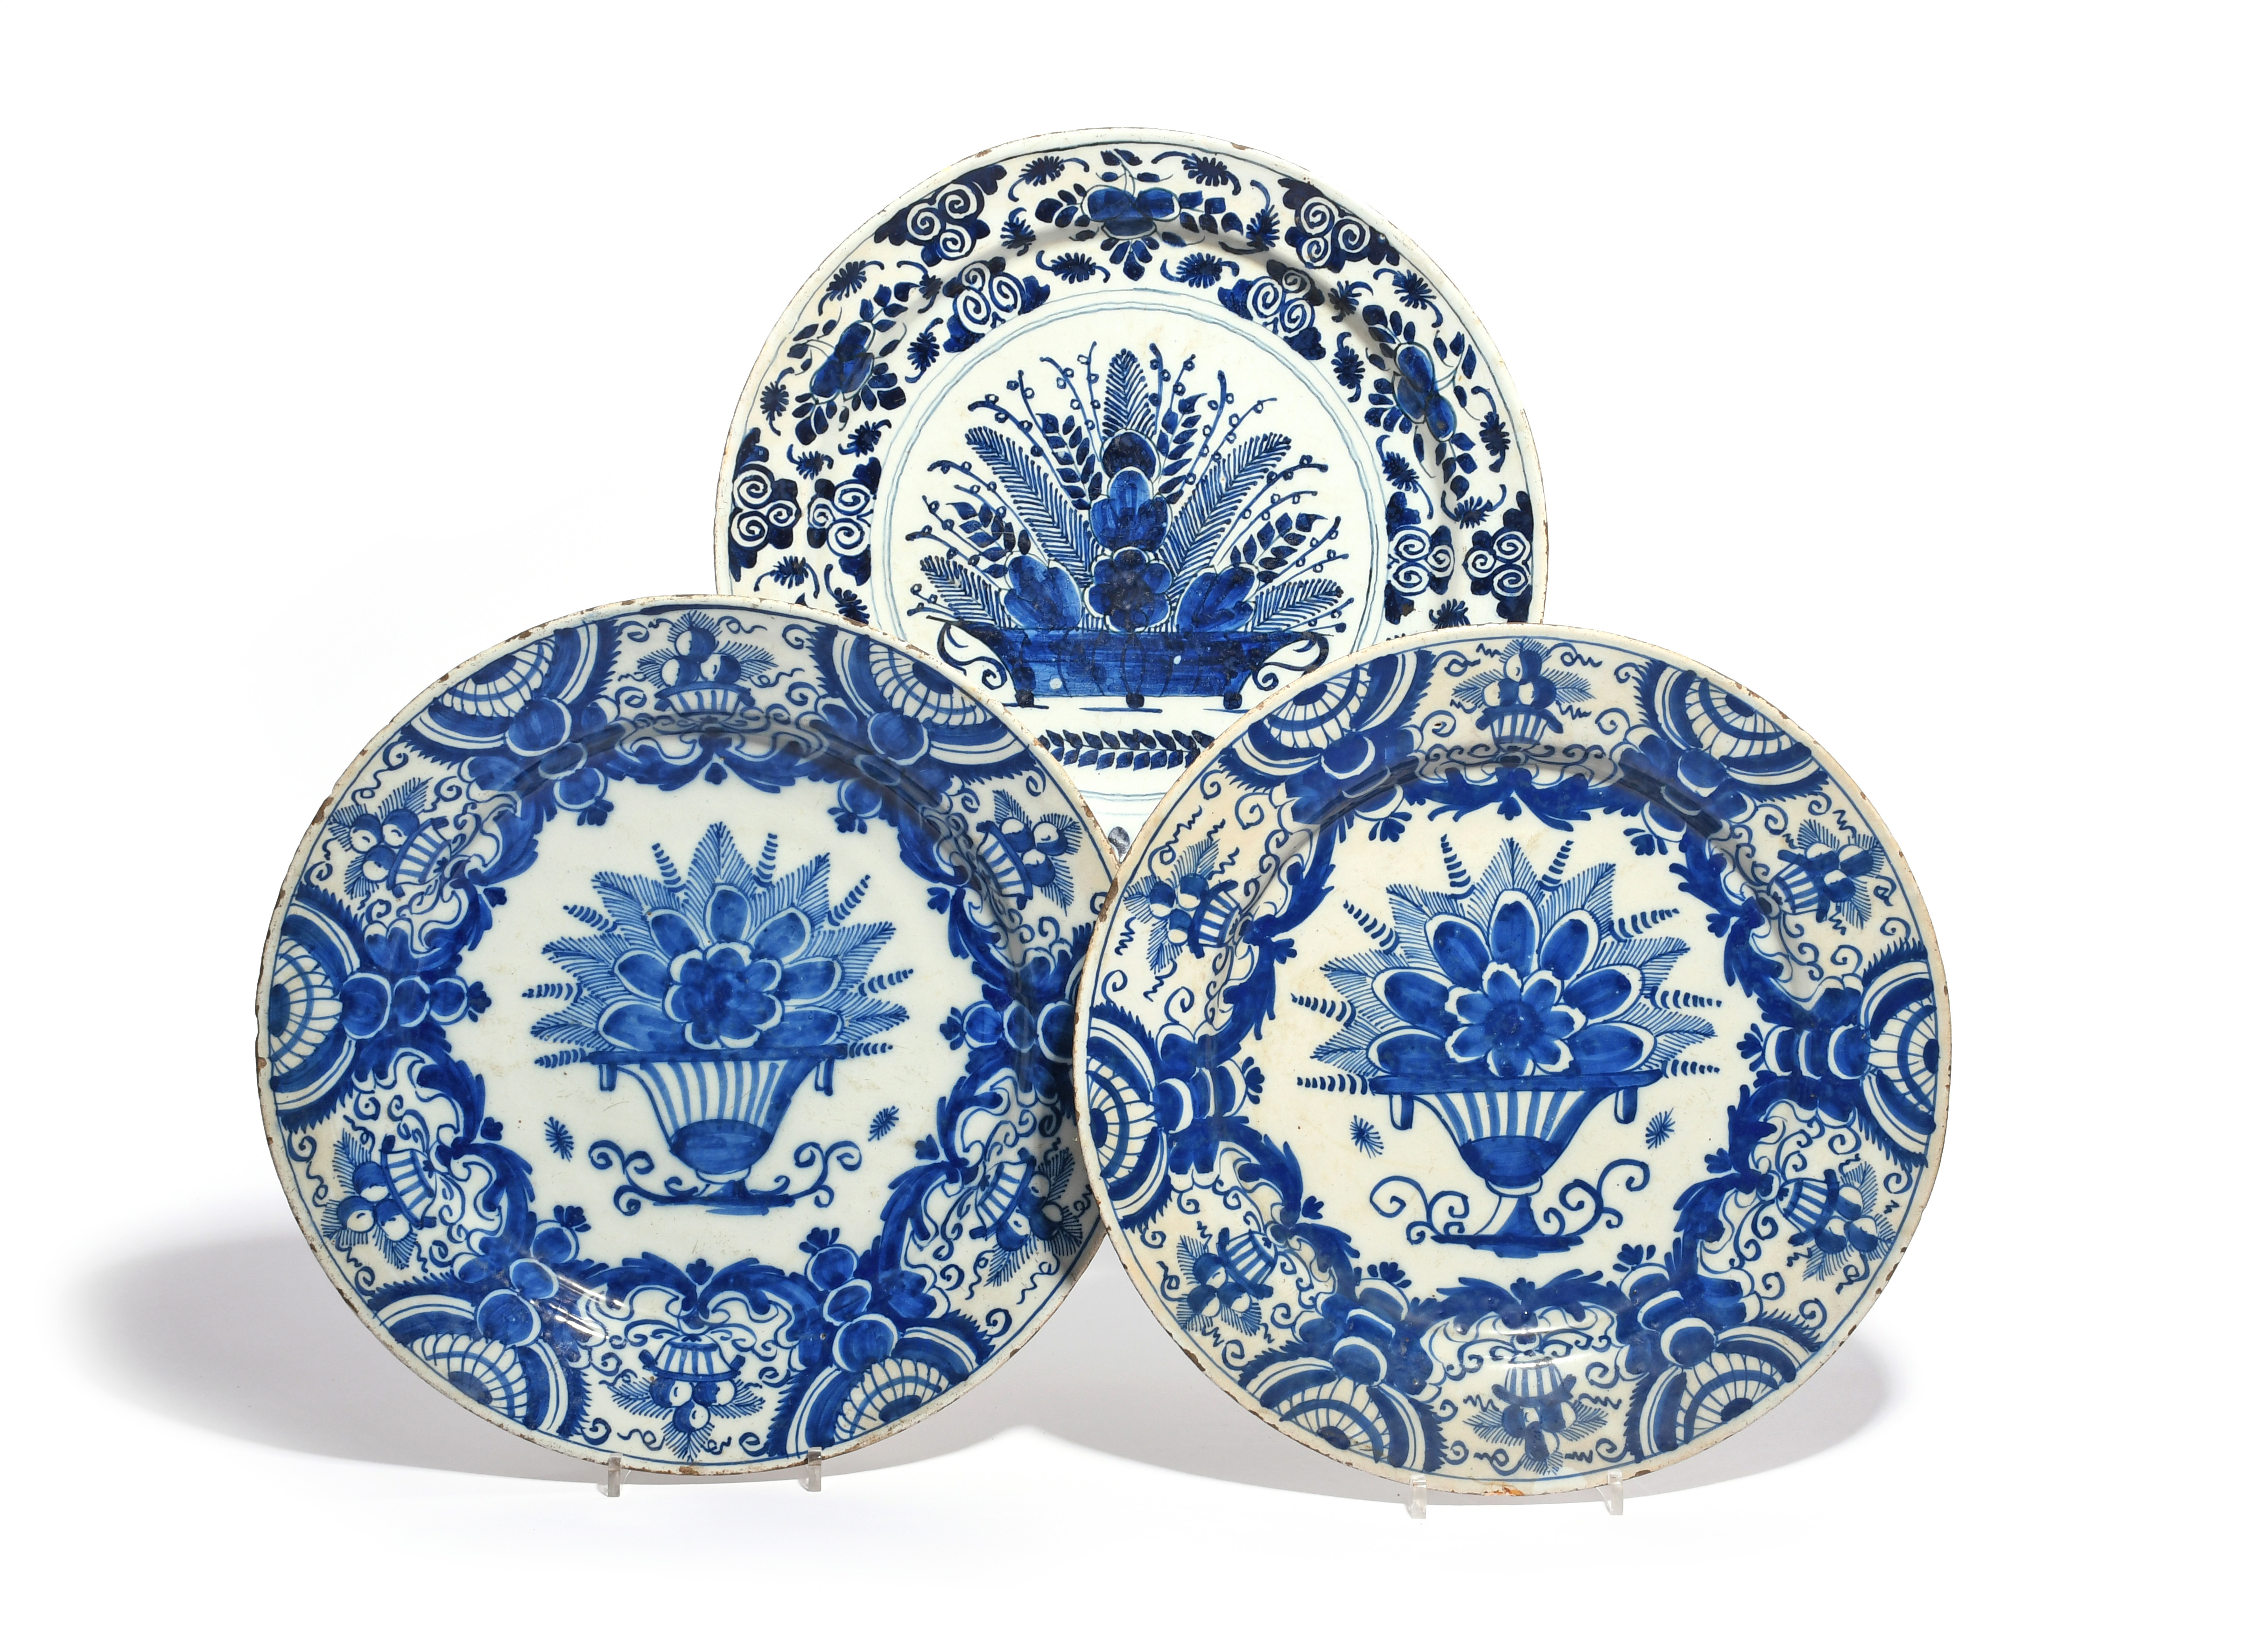 Three Delft chargers 18th century, variously painted in underglaze blue with vases and baskets of